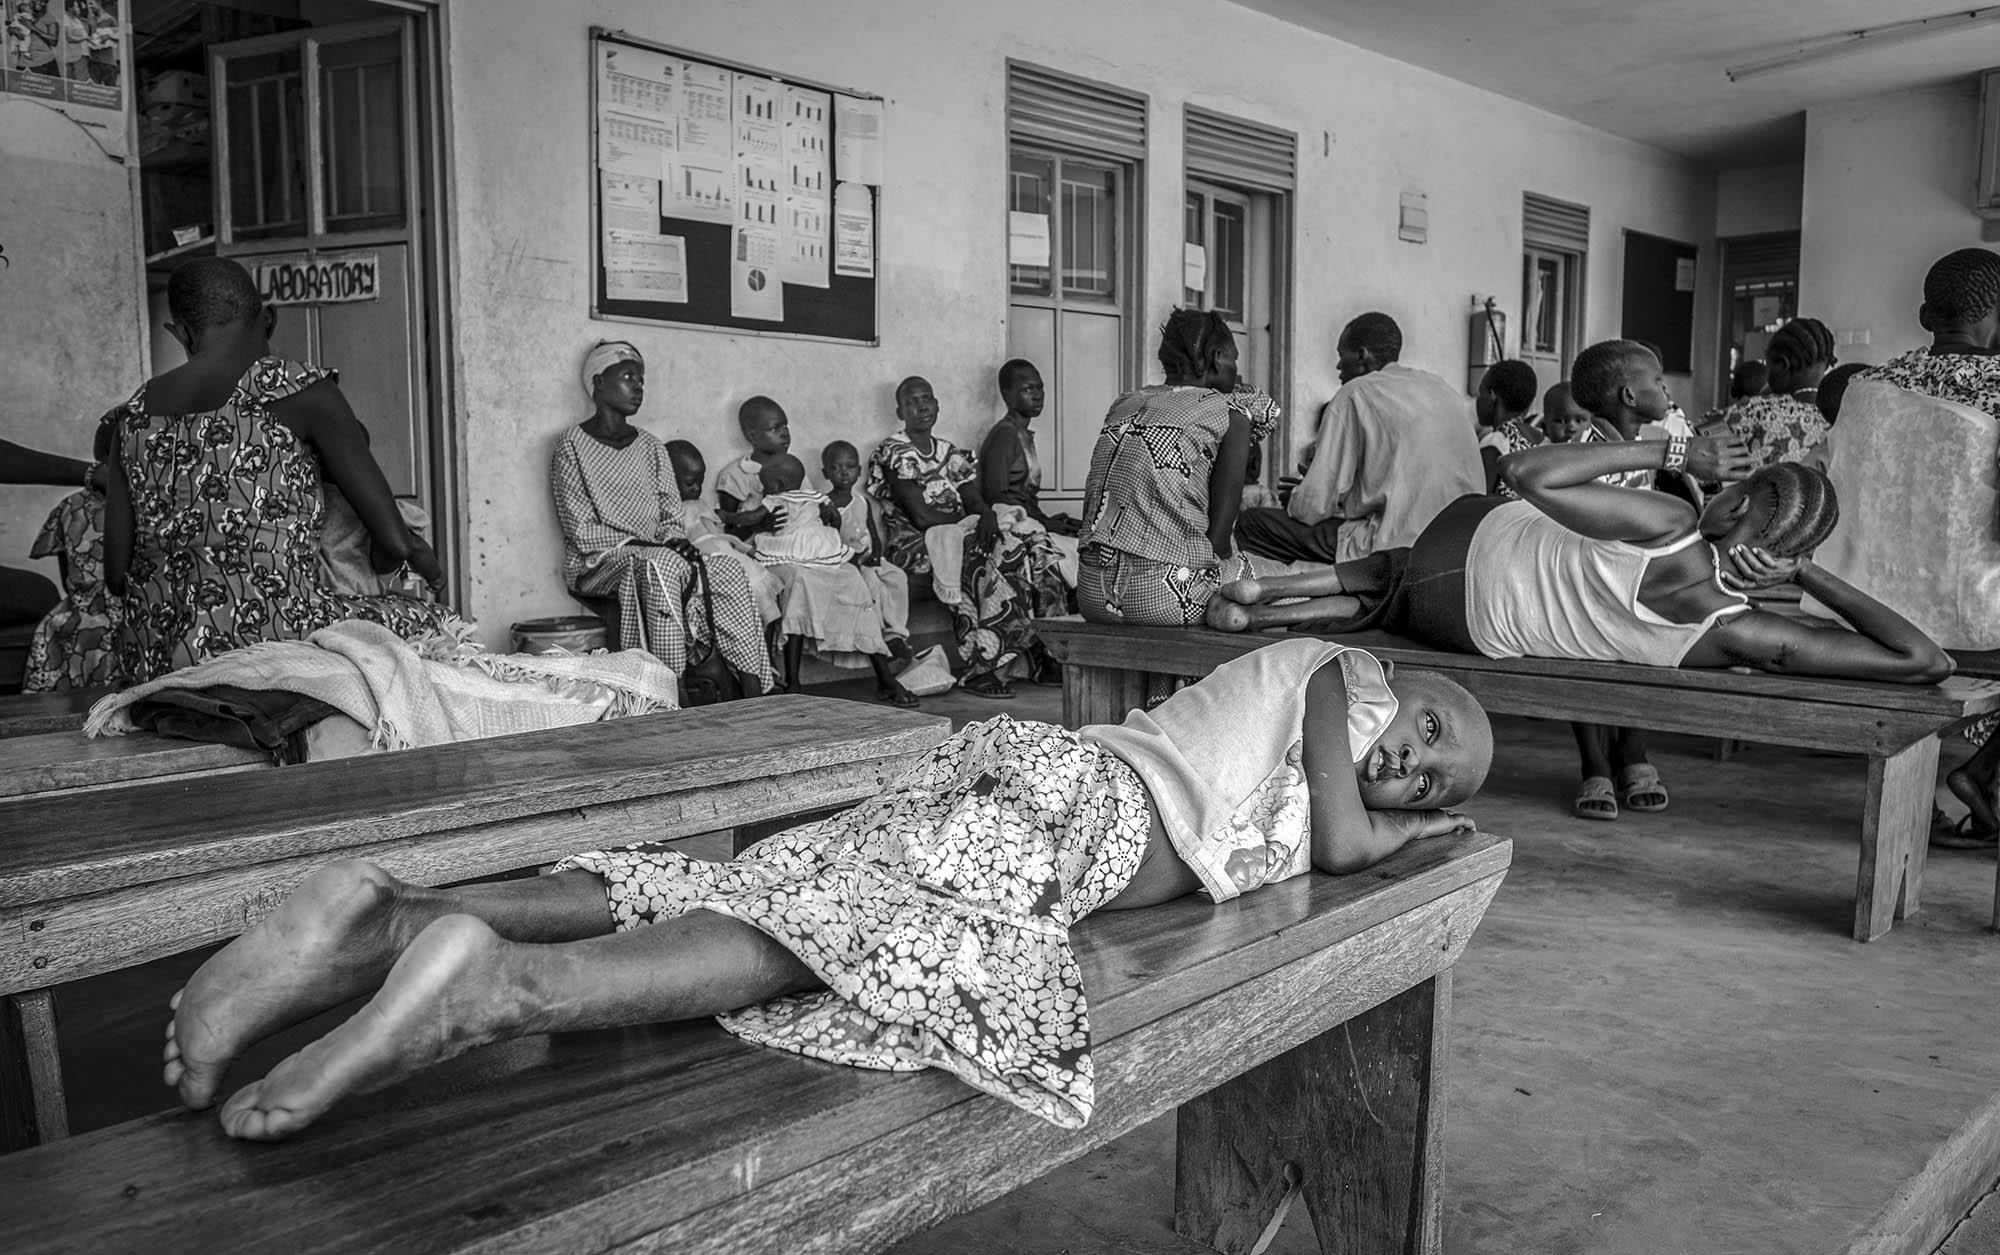 South Sudanese refugees wait for service at a health center in Nyumanzi refugee settlement in Adjumani District of Northern Uganda on May 3, 2017.